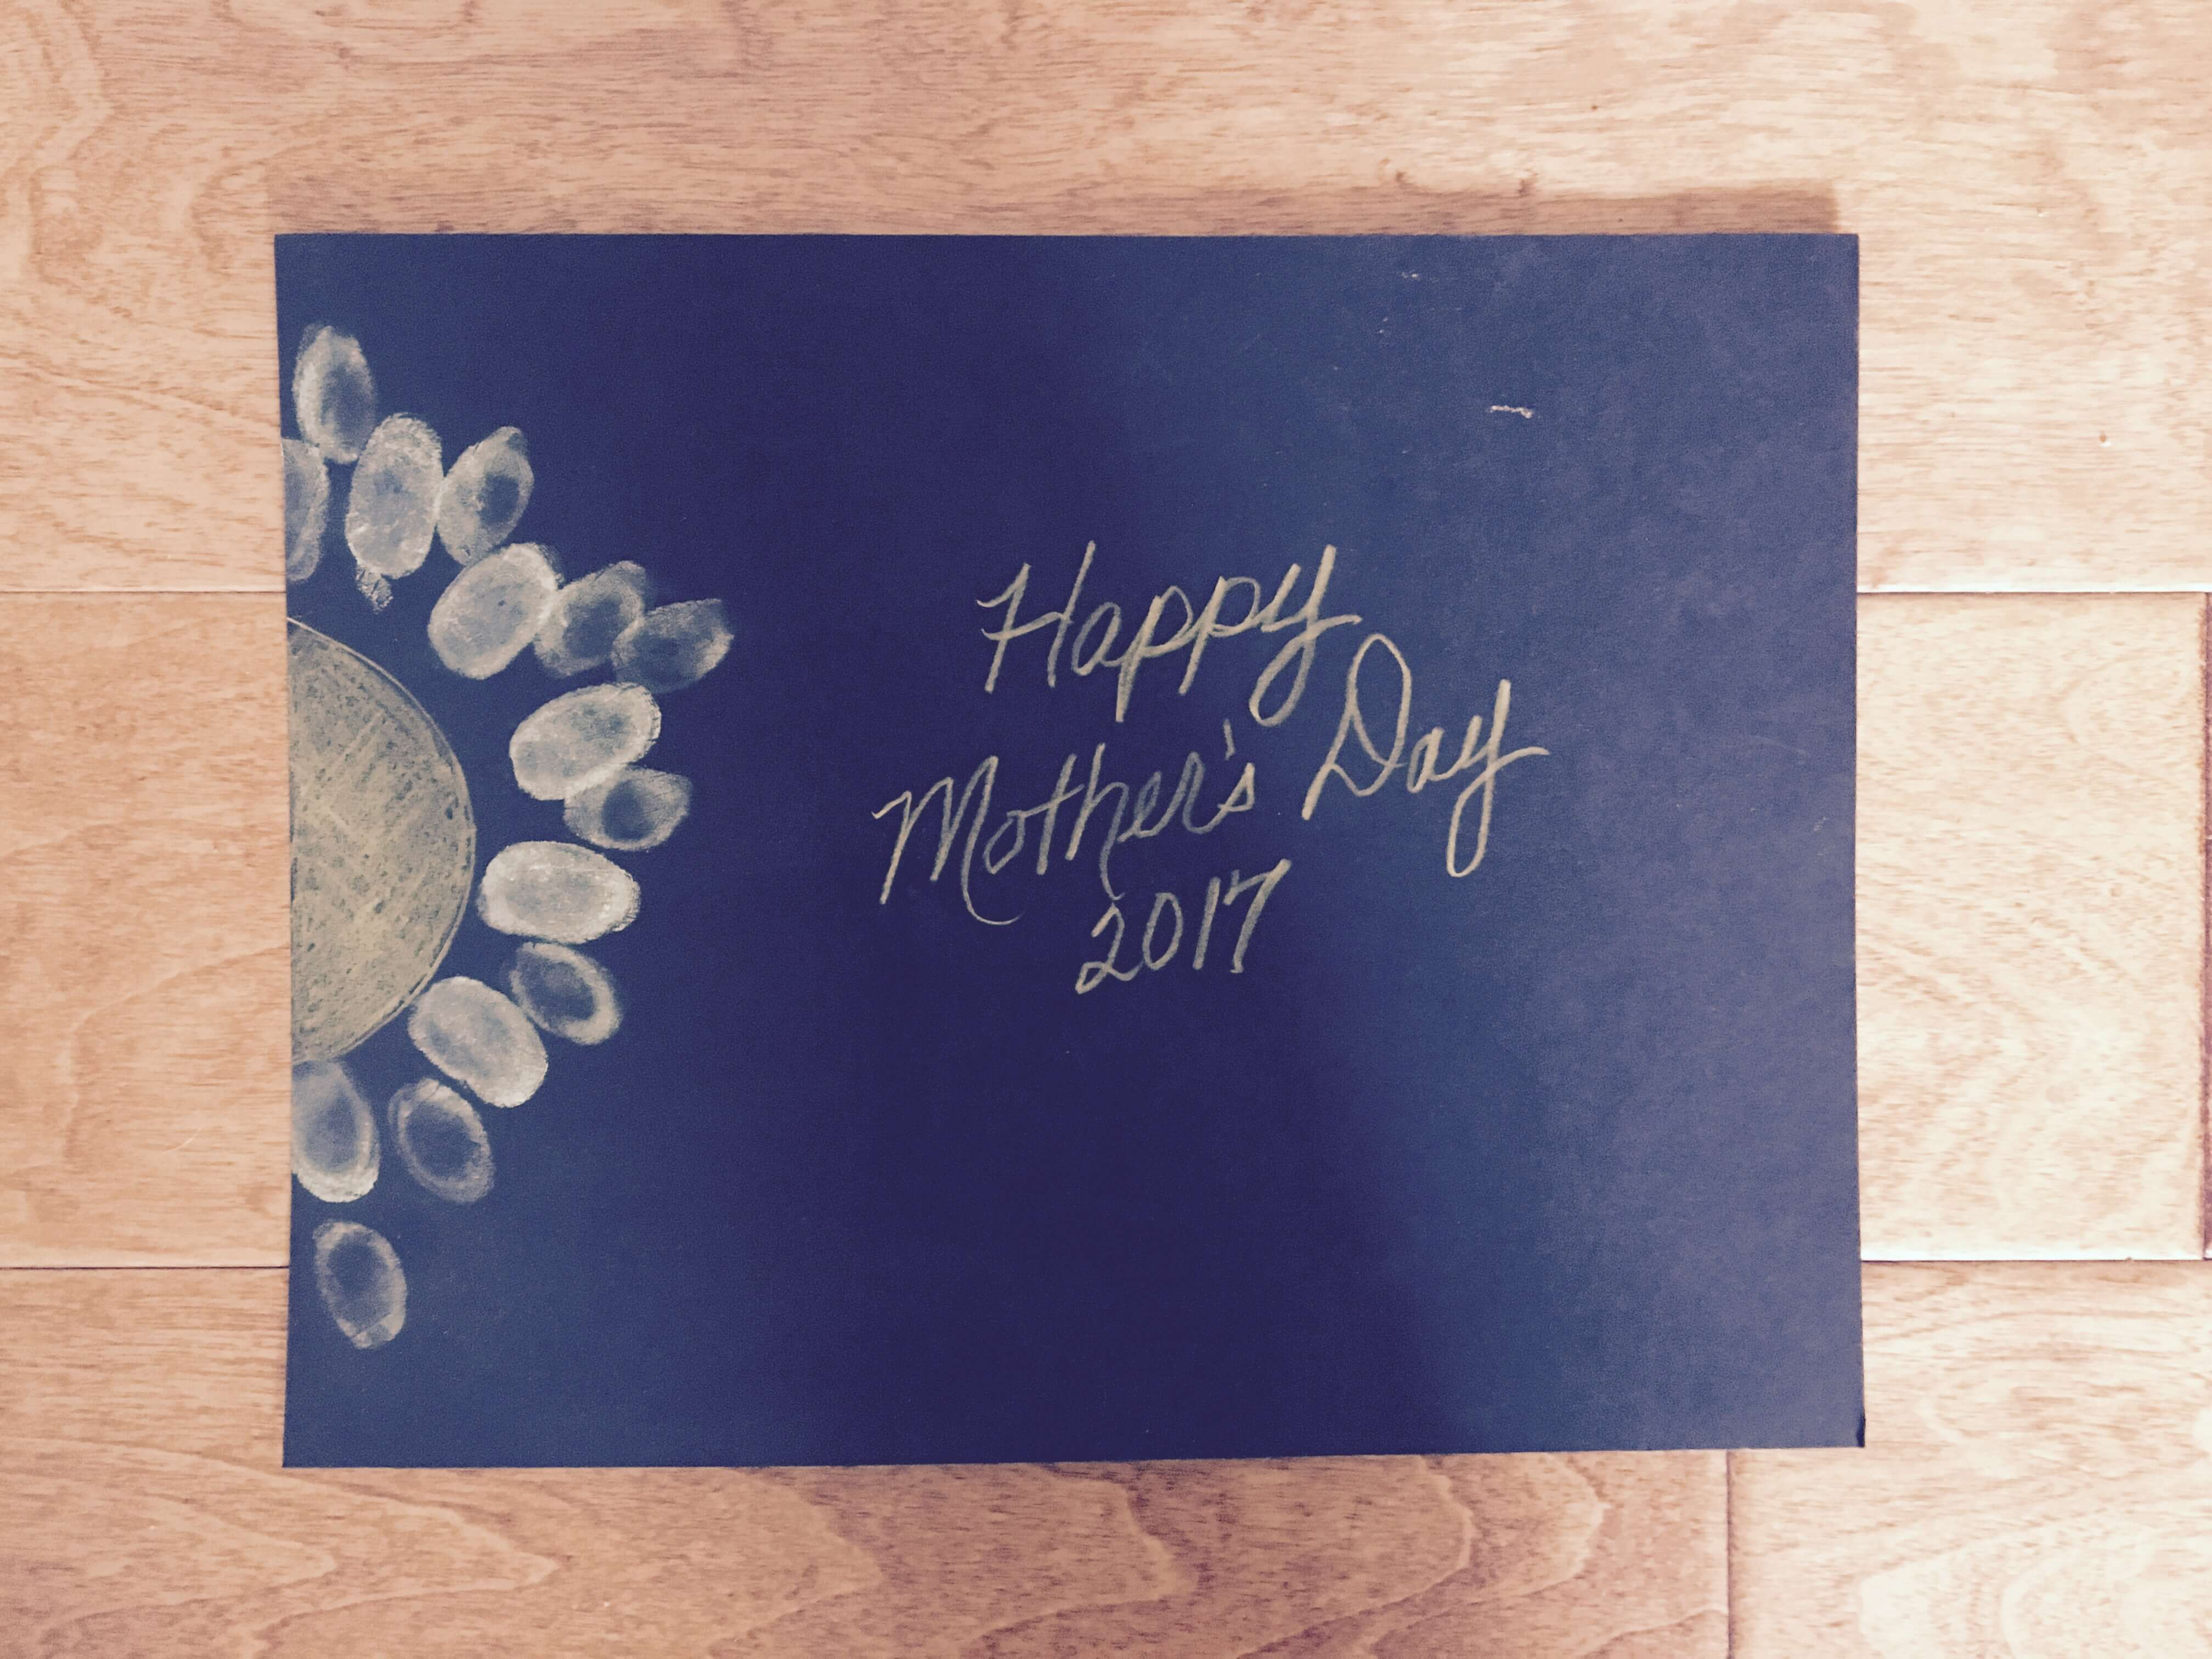 Rox Arts Council Hosts Mothers Day Make-and-Take Event